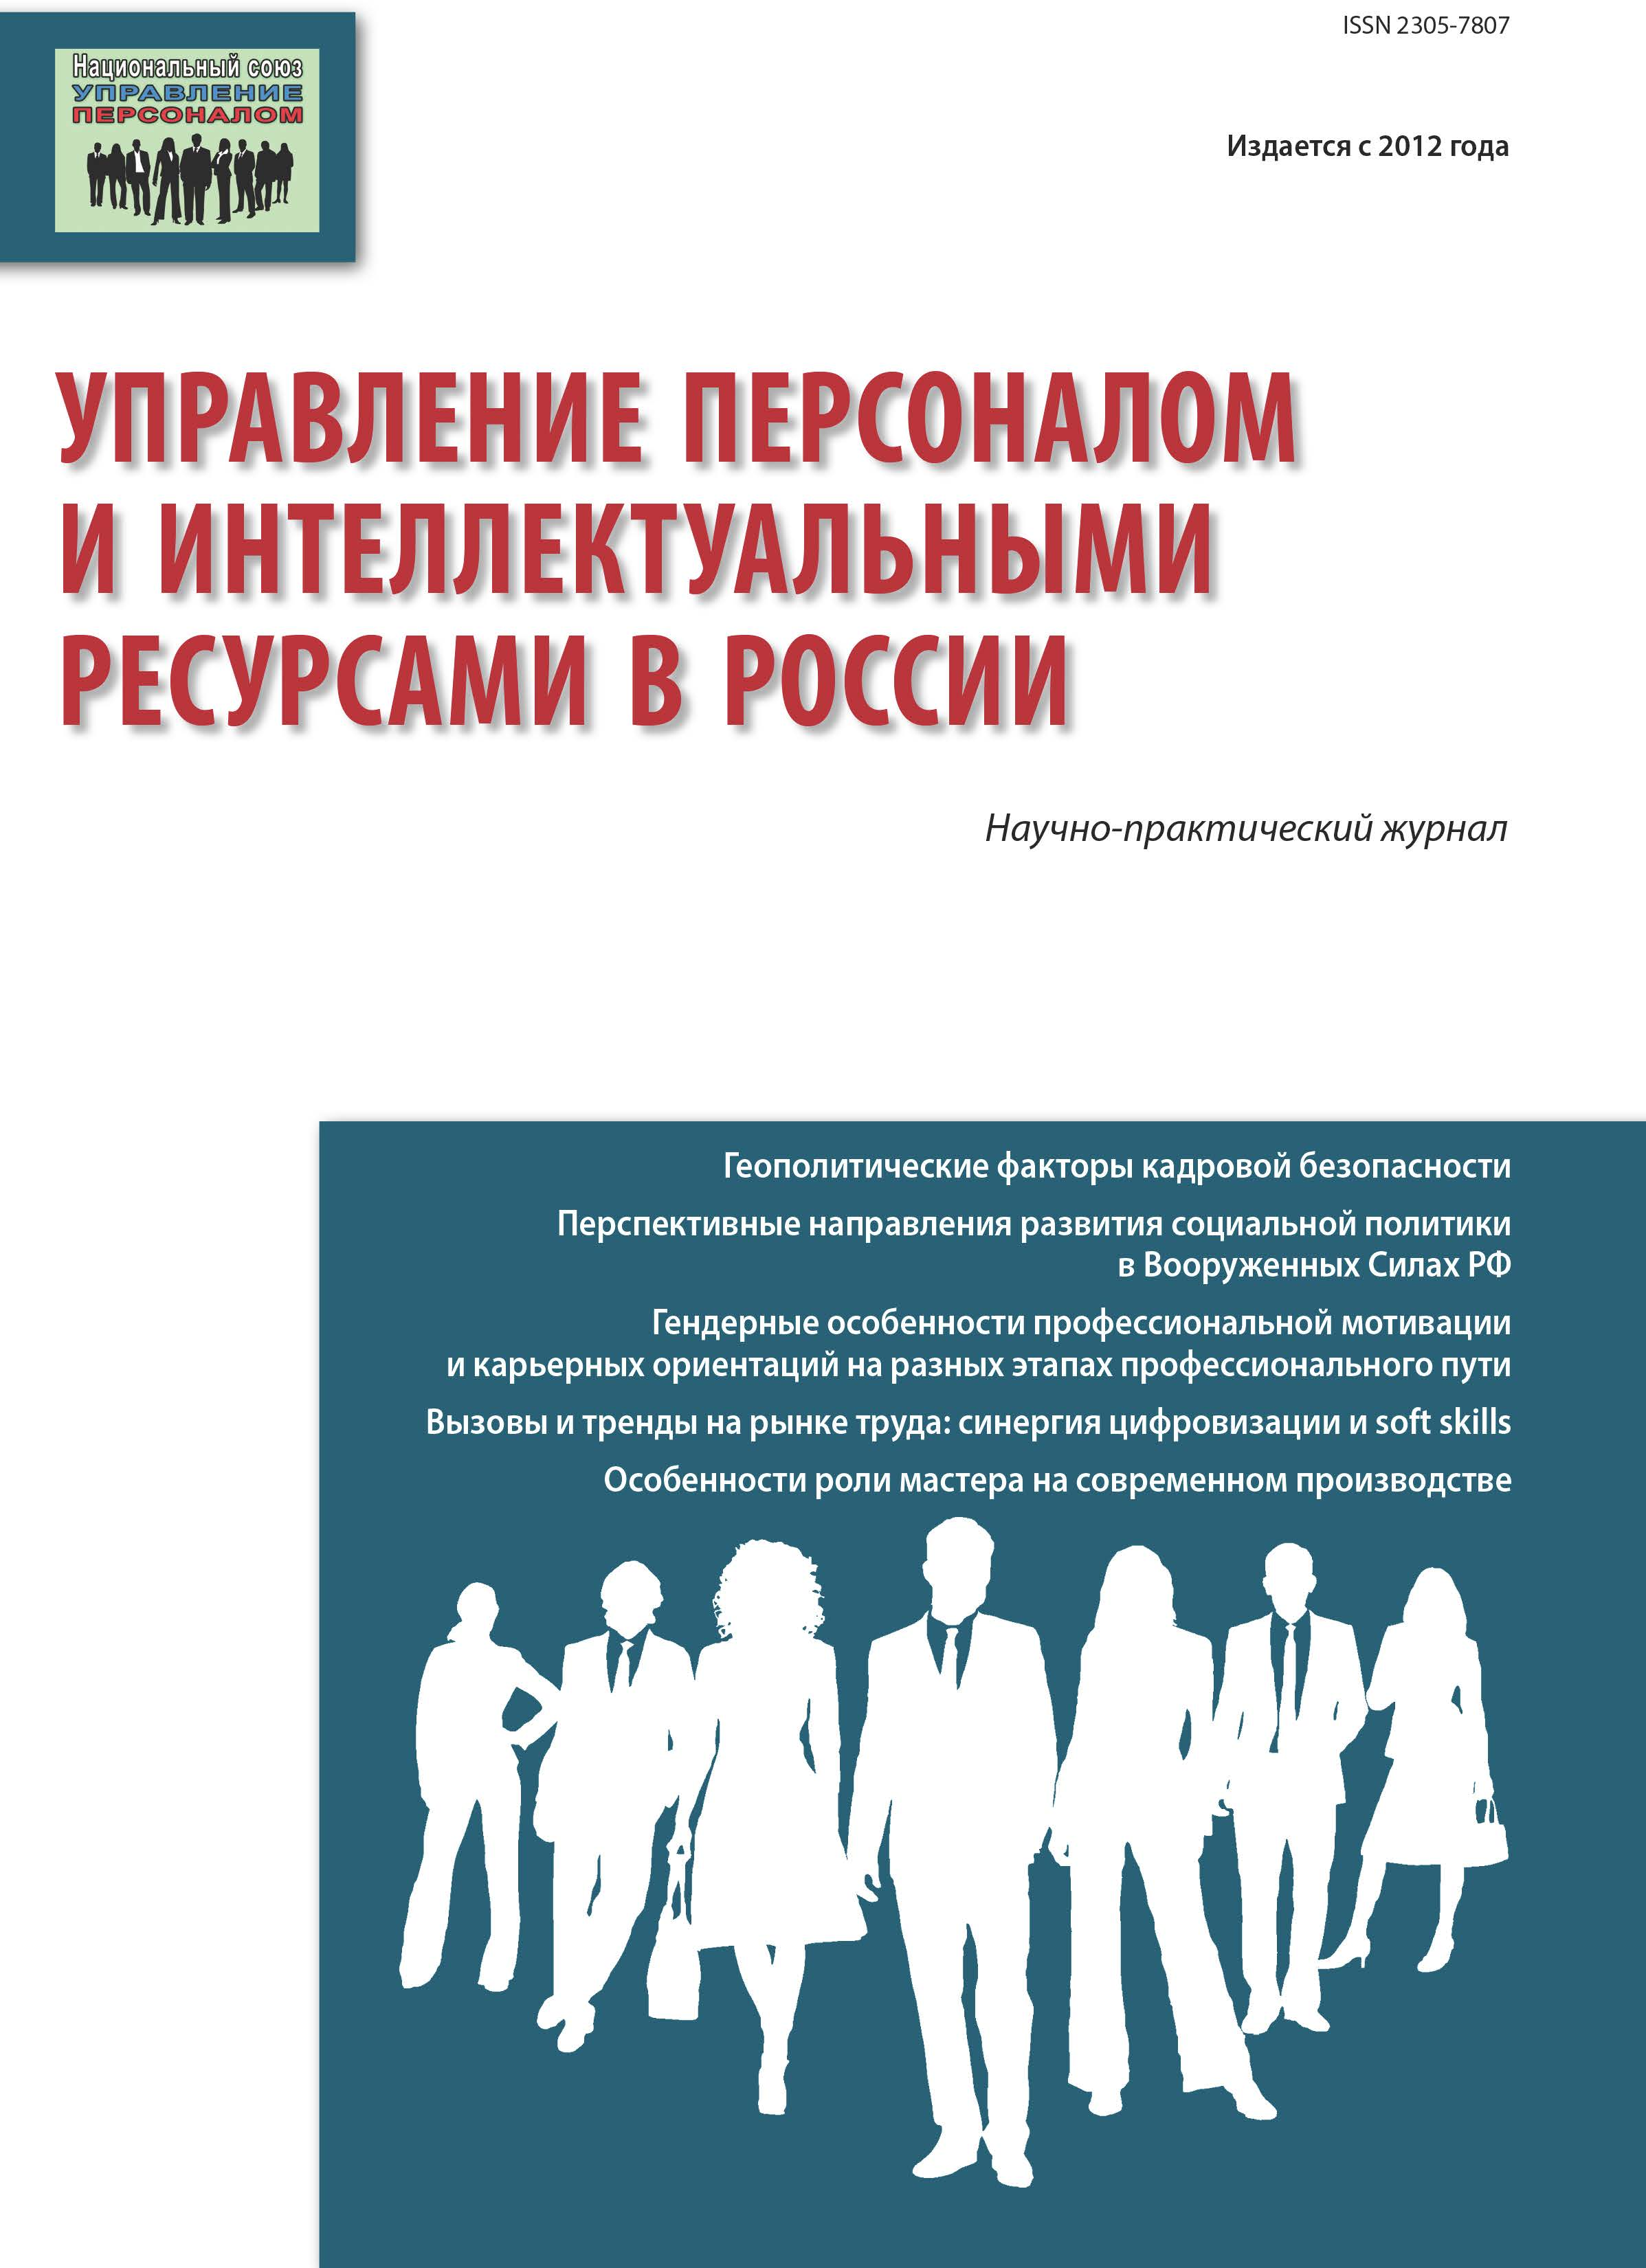 Management of the Personnel and Intellectual Resources in Russia